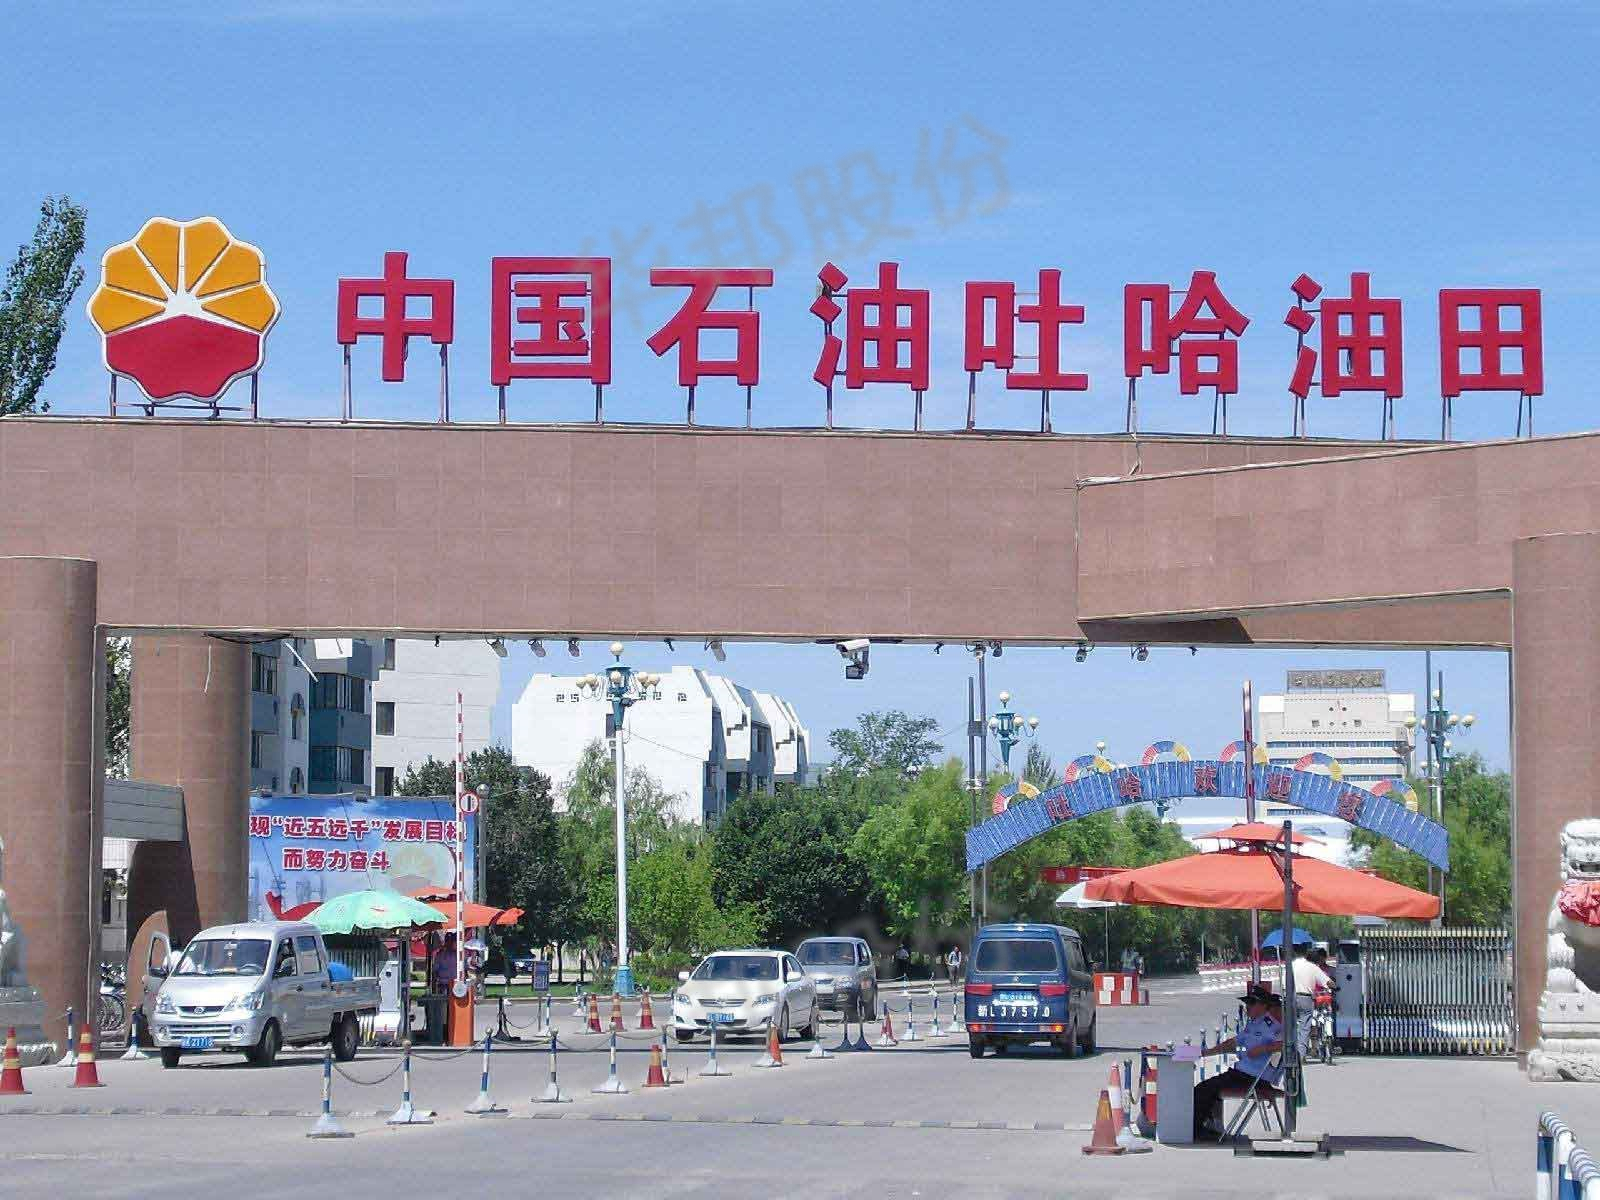 The energy monitoring project of the HMI oil base in xinjiang